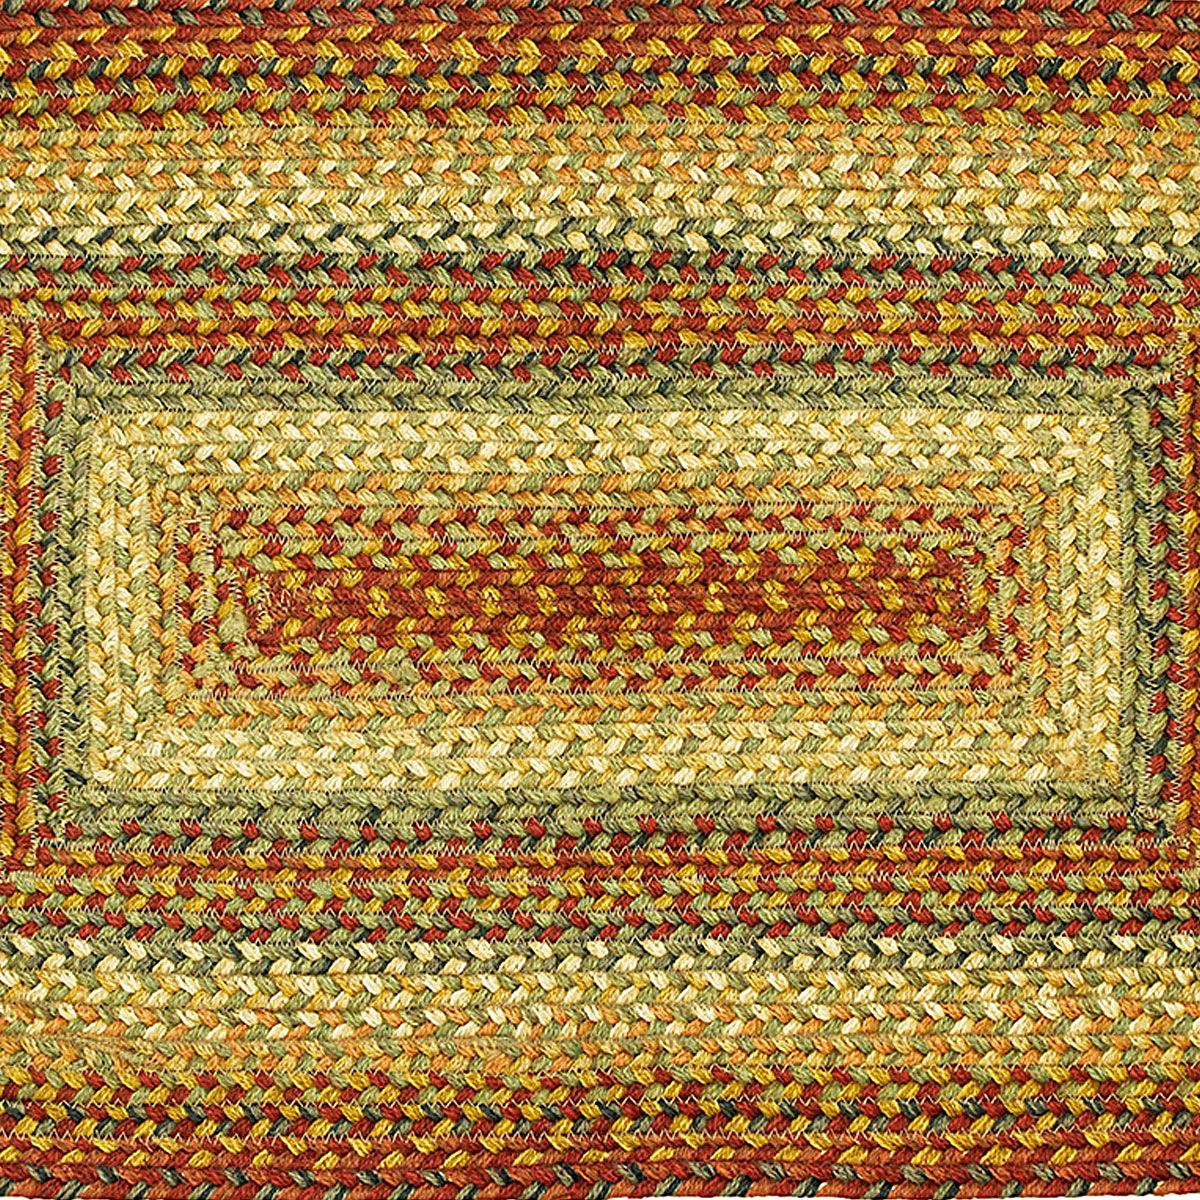 Washable Primitive Rugs: Primitive Jute Braided Area Rugs Oval Rectangle 20x30-8x10